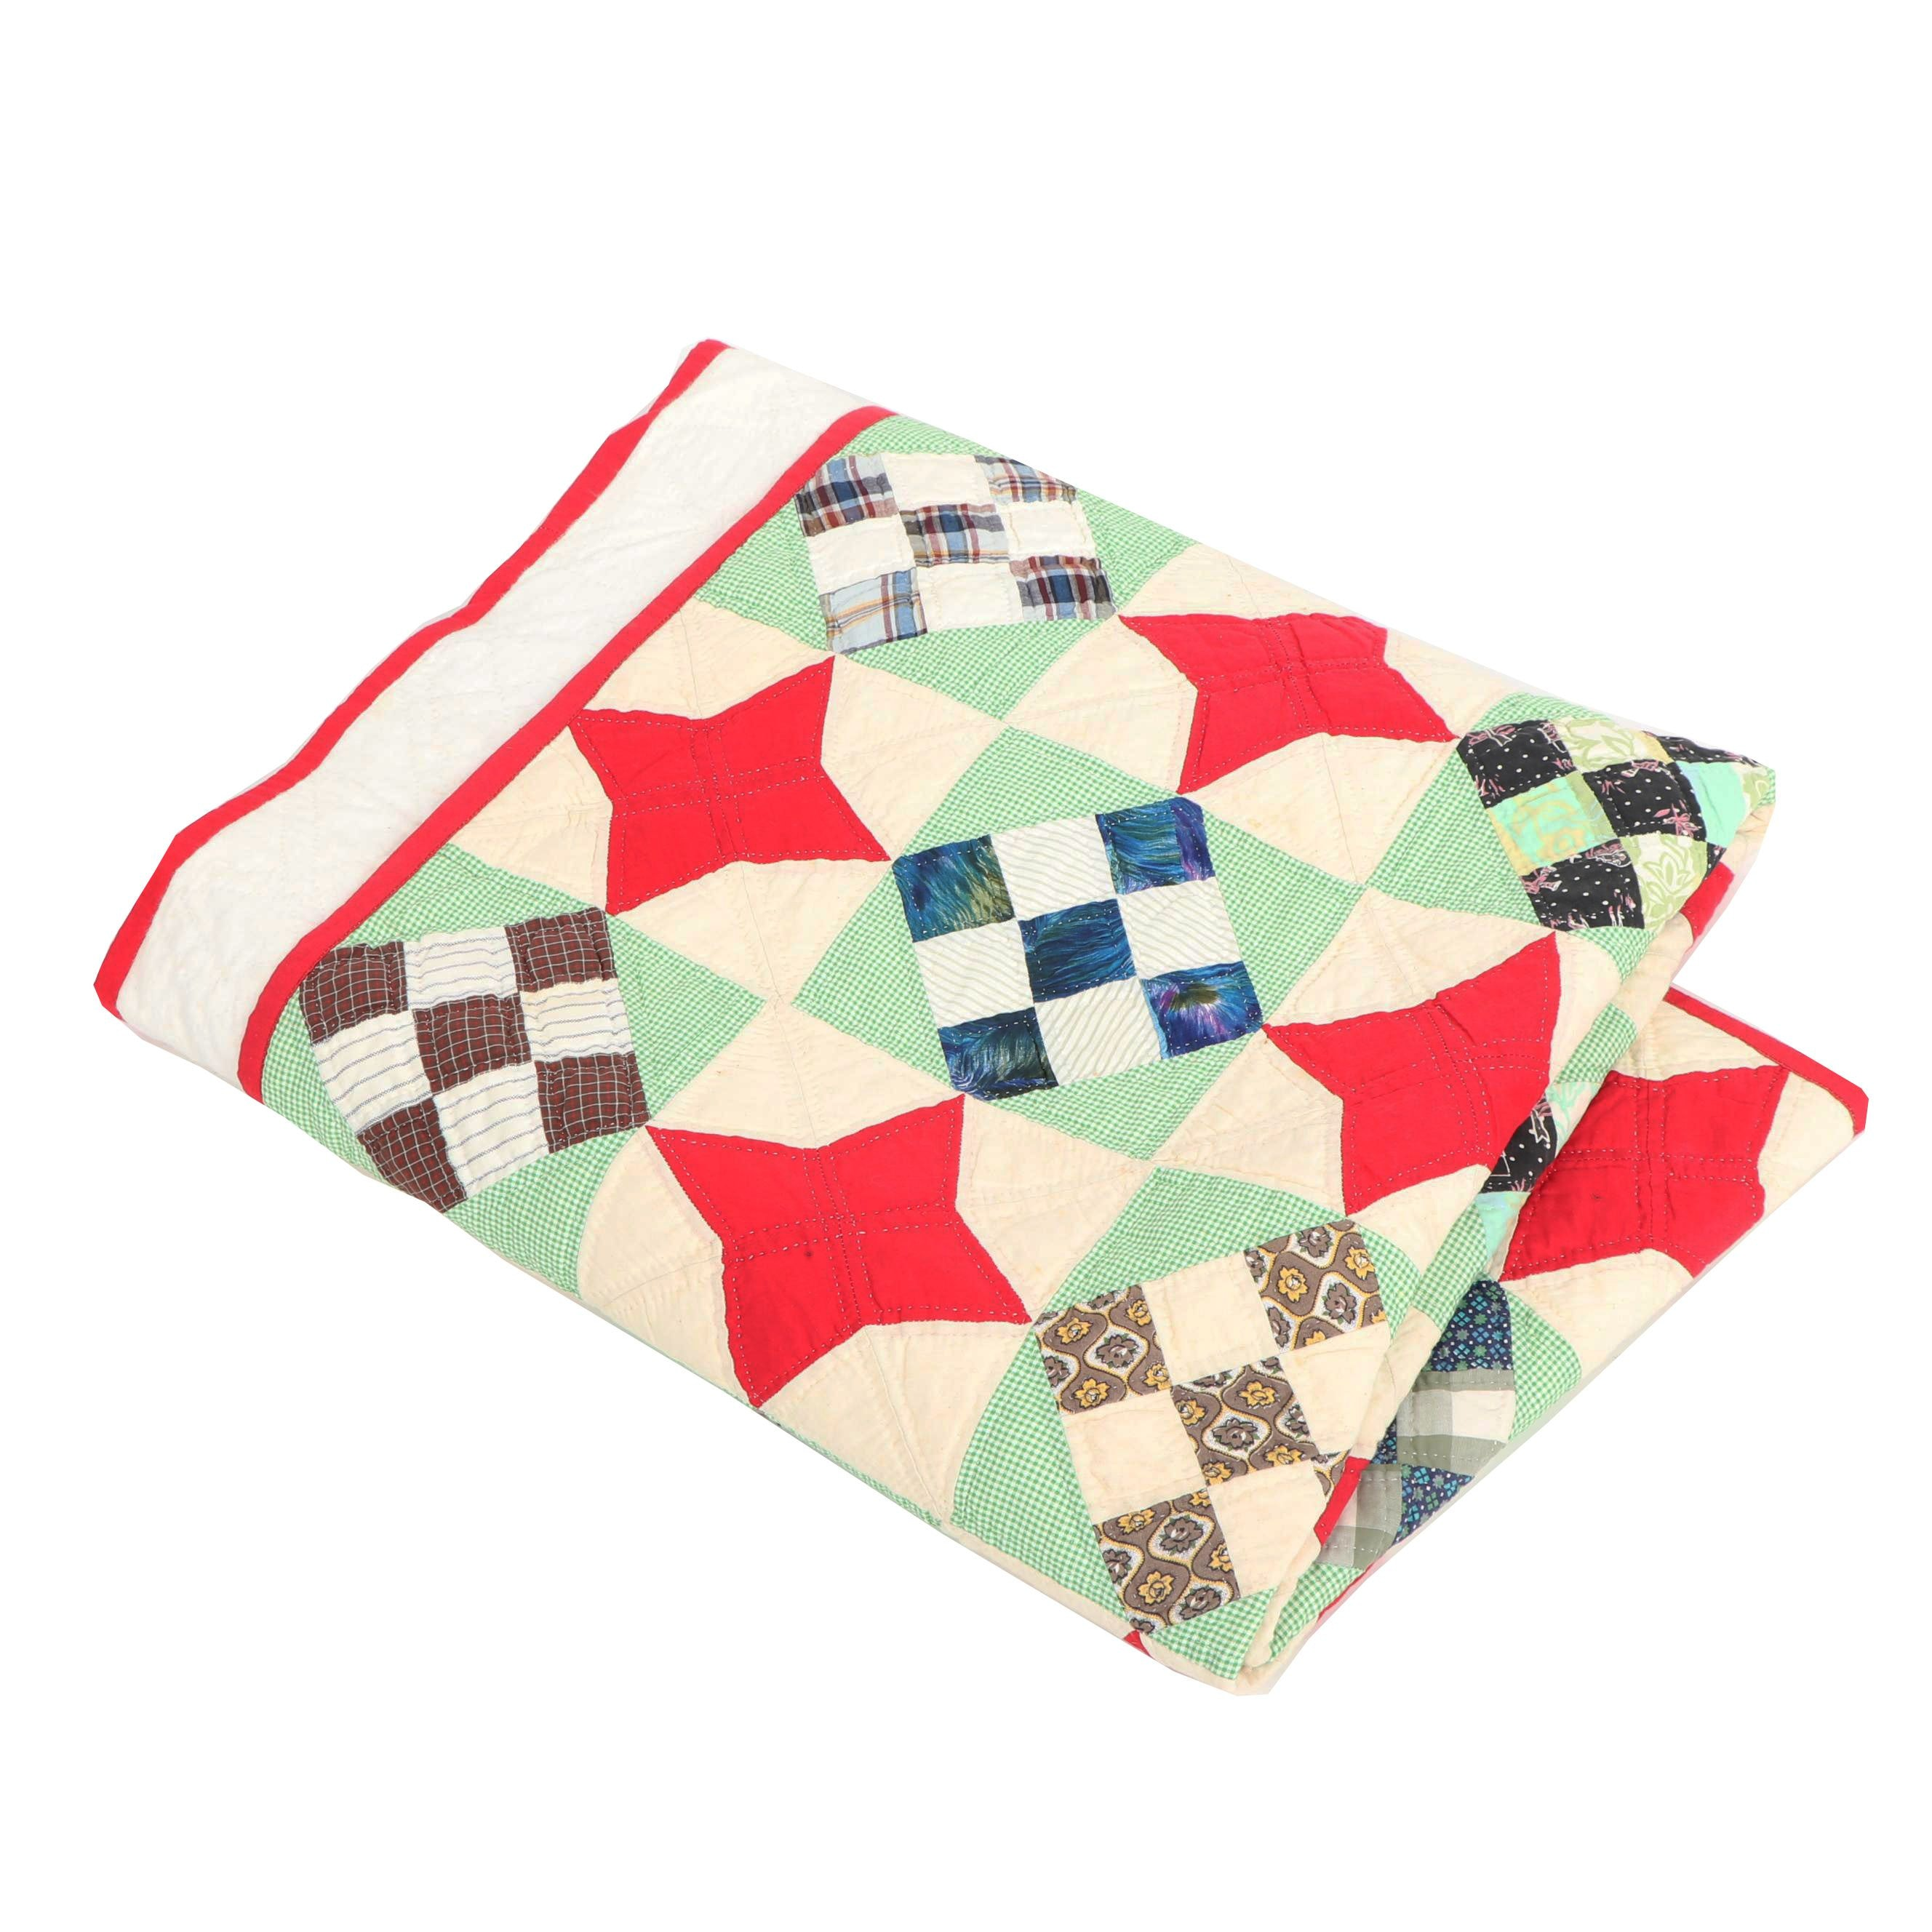 """Handmade """"Four Point Star and Diamond Patchwork"""" Quilt"""